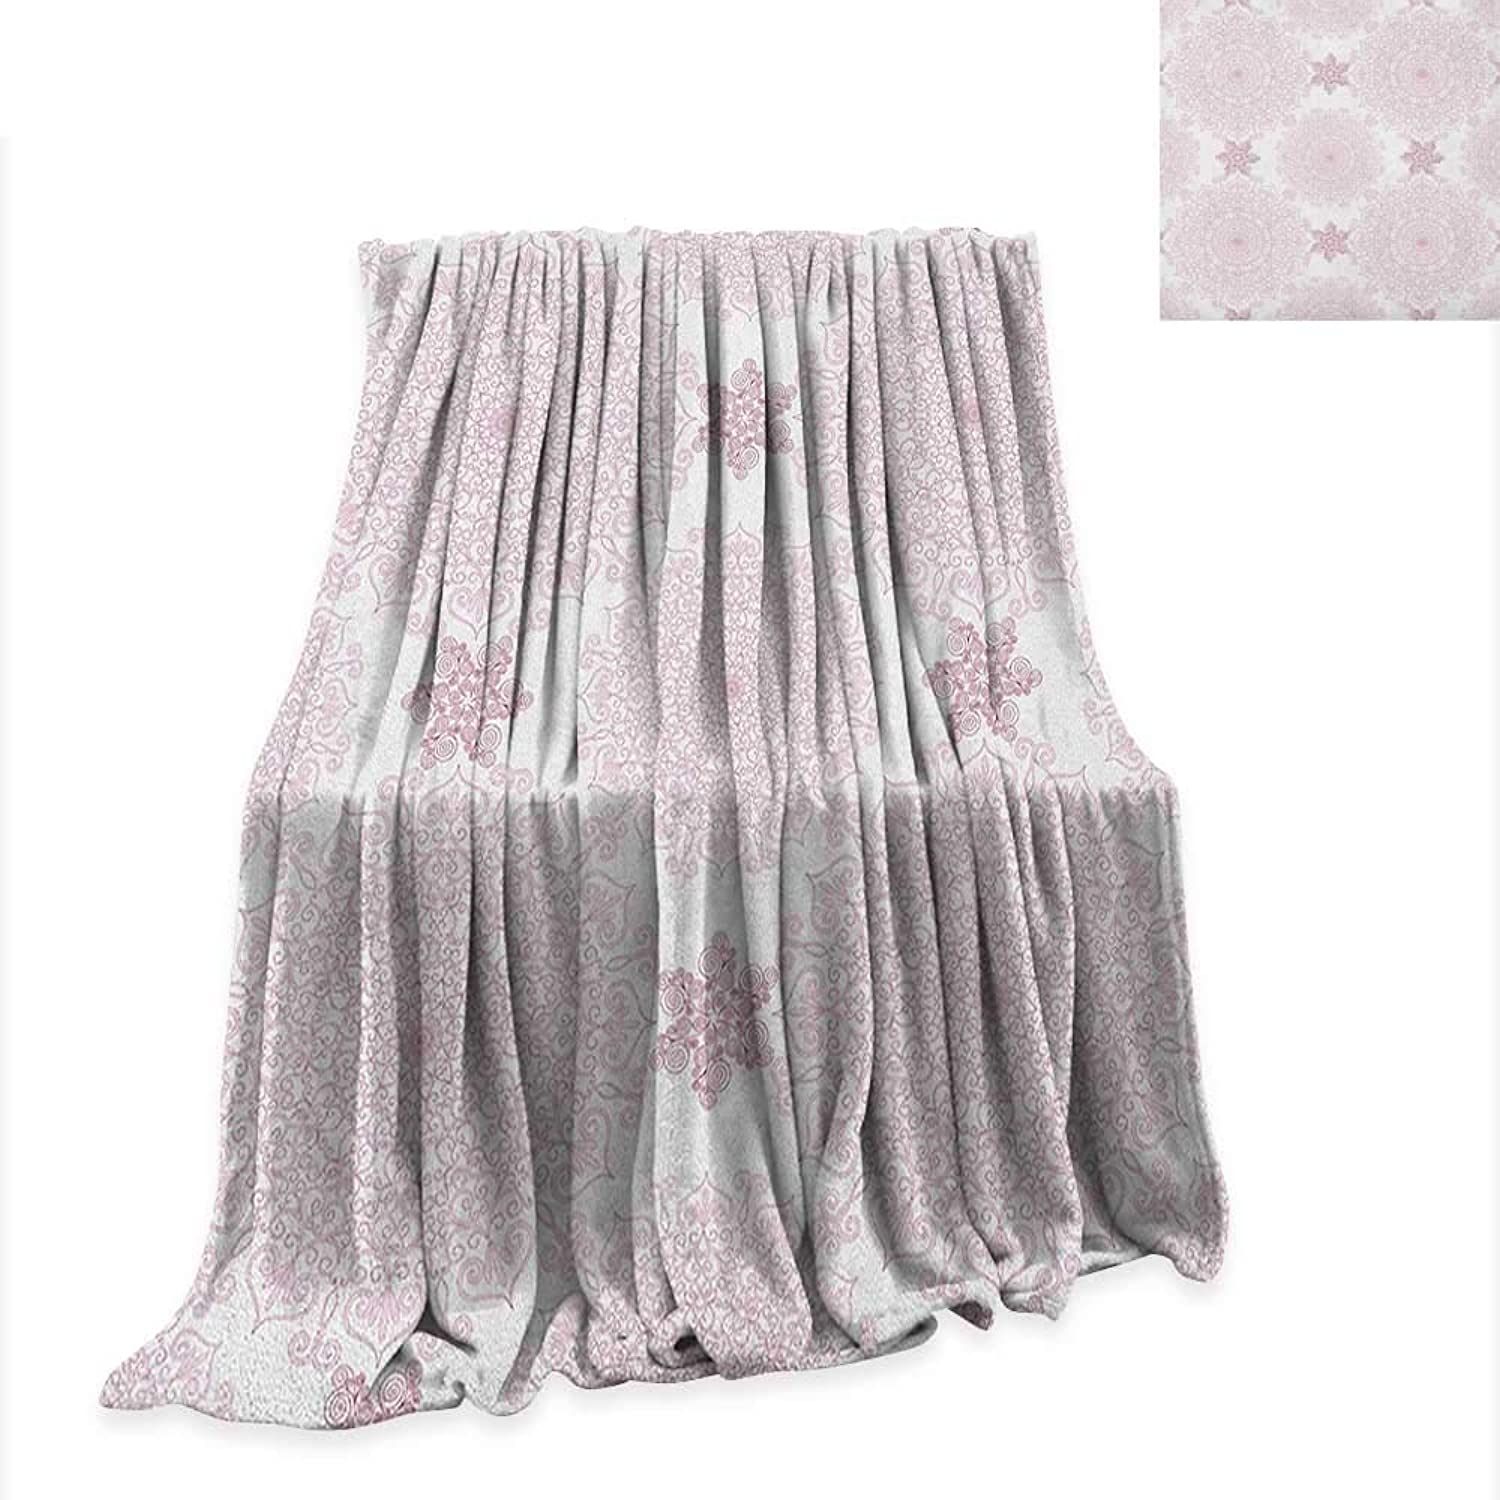 Anyangeight Purple Mandala Weave Pattern Extra Long Blanket Victorian Damask Style Vintage Ethnic Pattern with Rococo Effect Print 90 x70 ,Super Soft and Comfortable,Suitable for Sofas,Chairs,beds